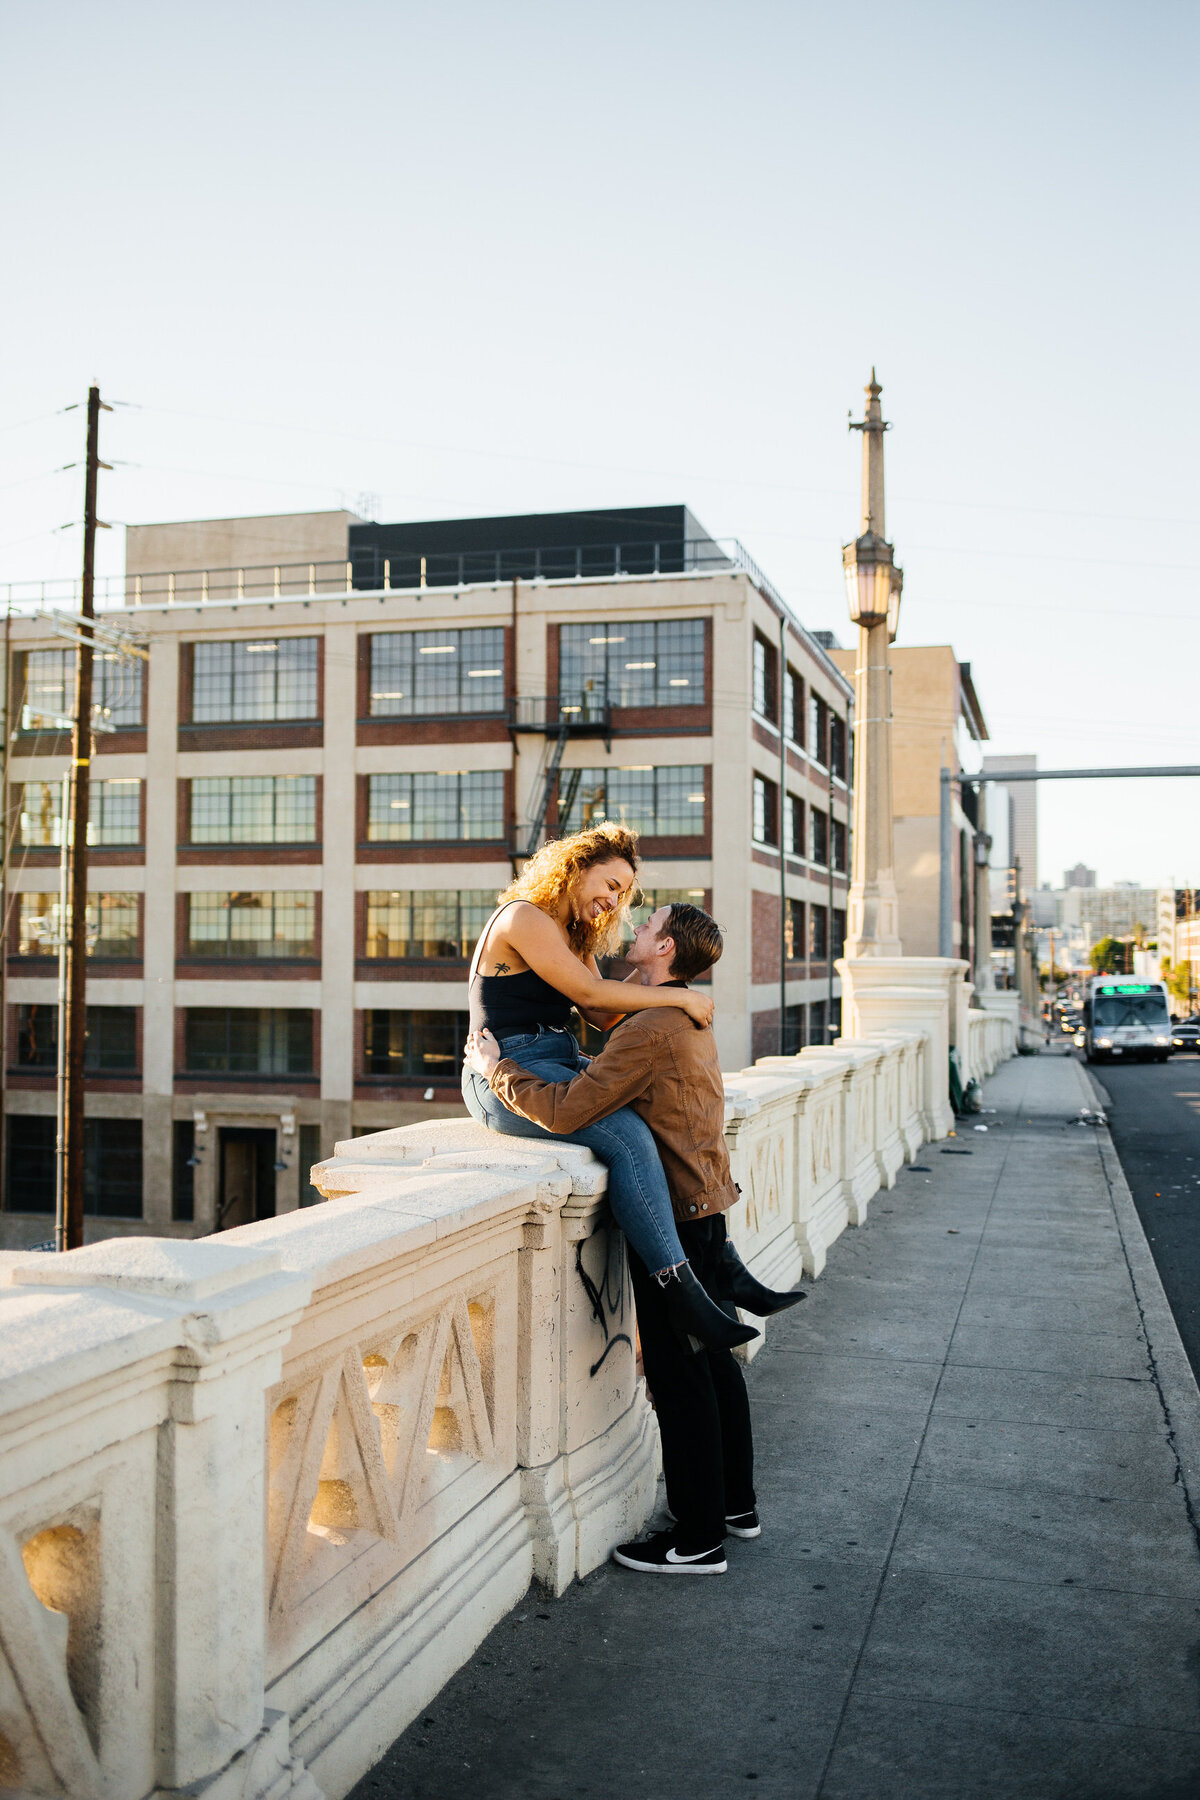 downtown-los-angeles-arts-district-engagement-photos-dtla-engagement-photos-los-angeles-wedding-photographer-erin-marton-photography-15